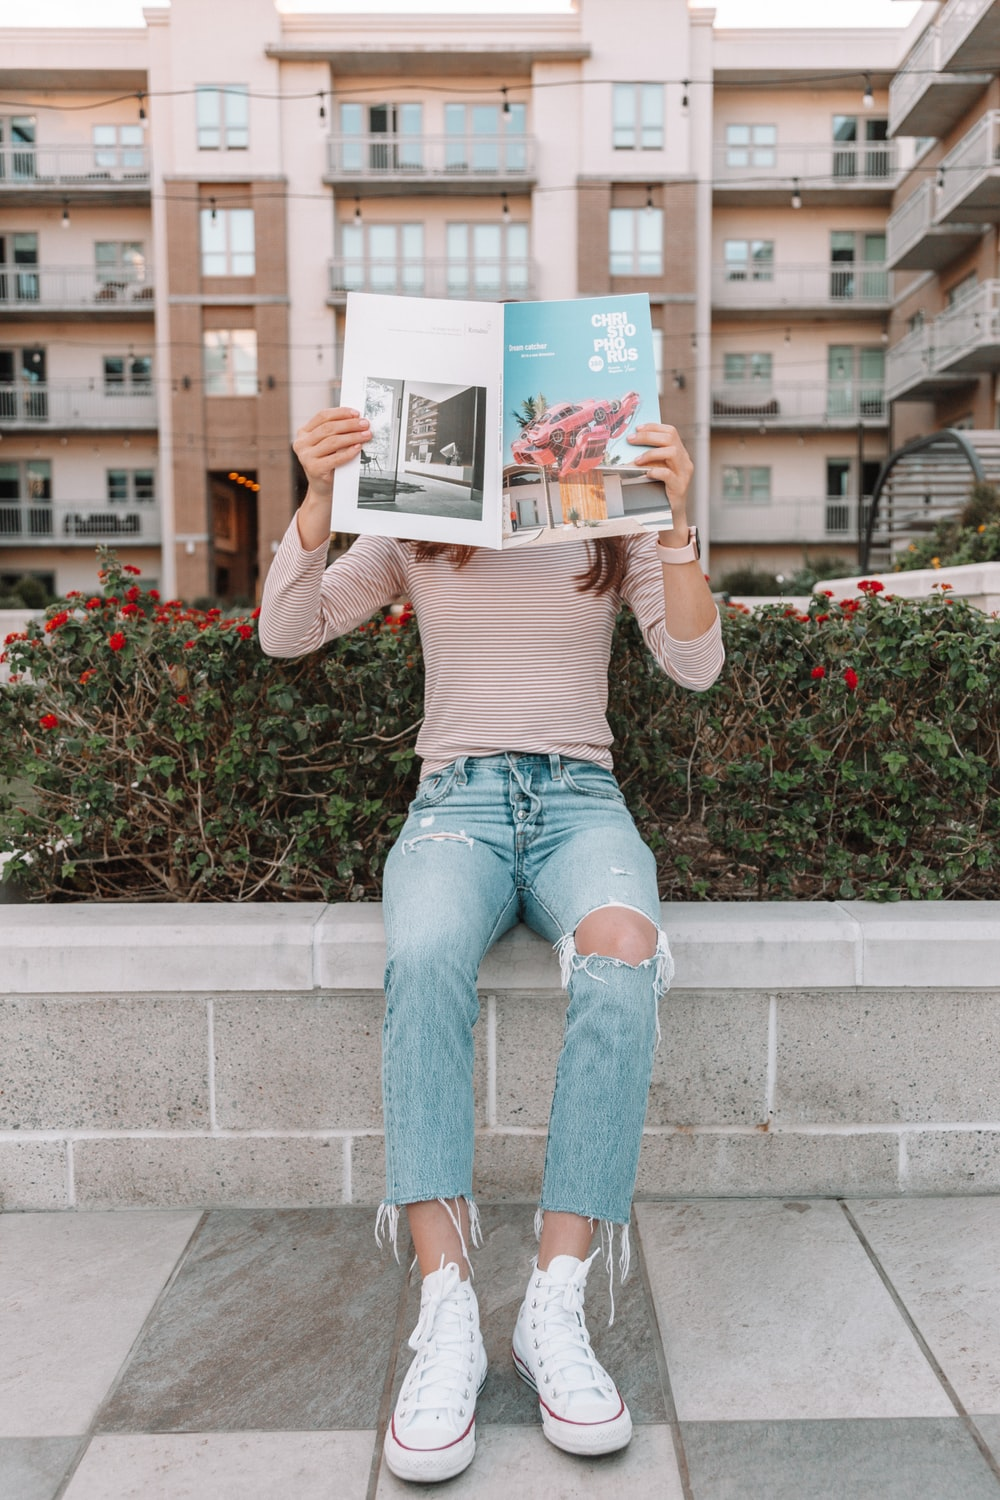 woman in brown long sleeve shirt and blue denim jeans sitting on concrete bench reading book